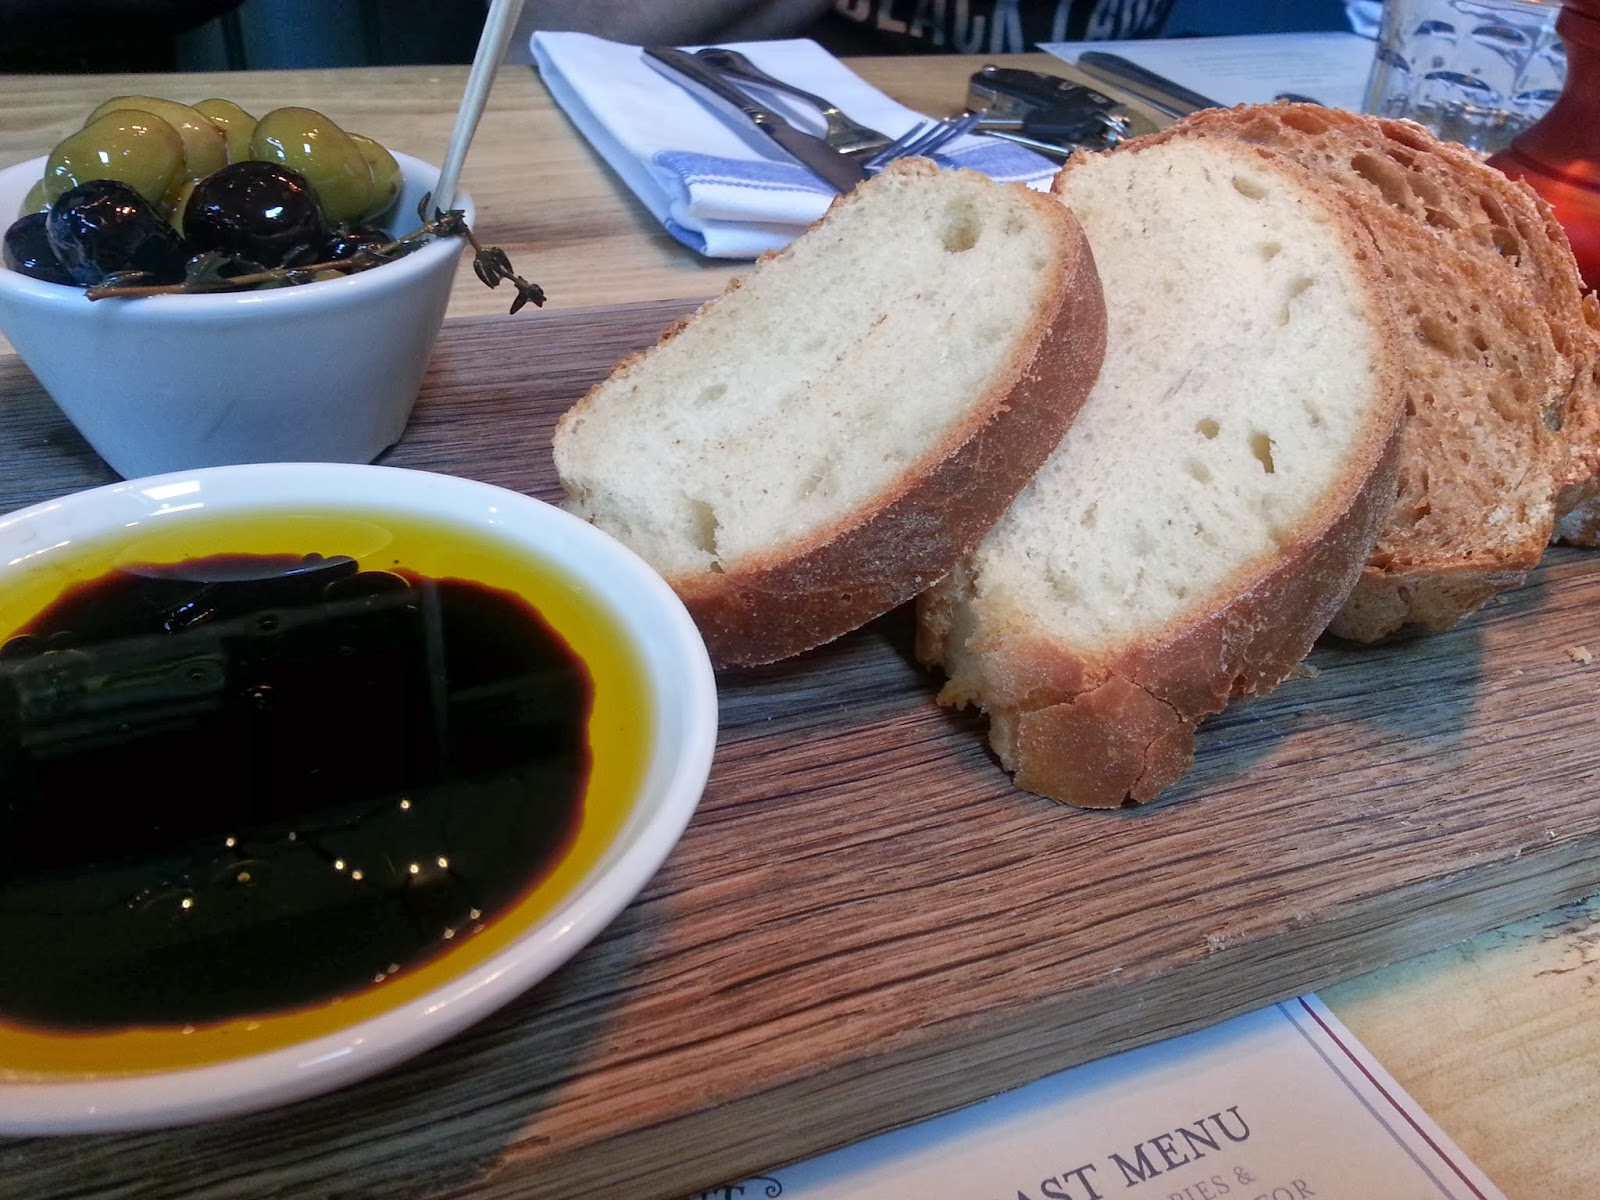 Bread and olives with balsamic and olive oil dip